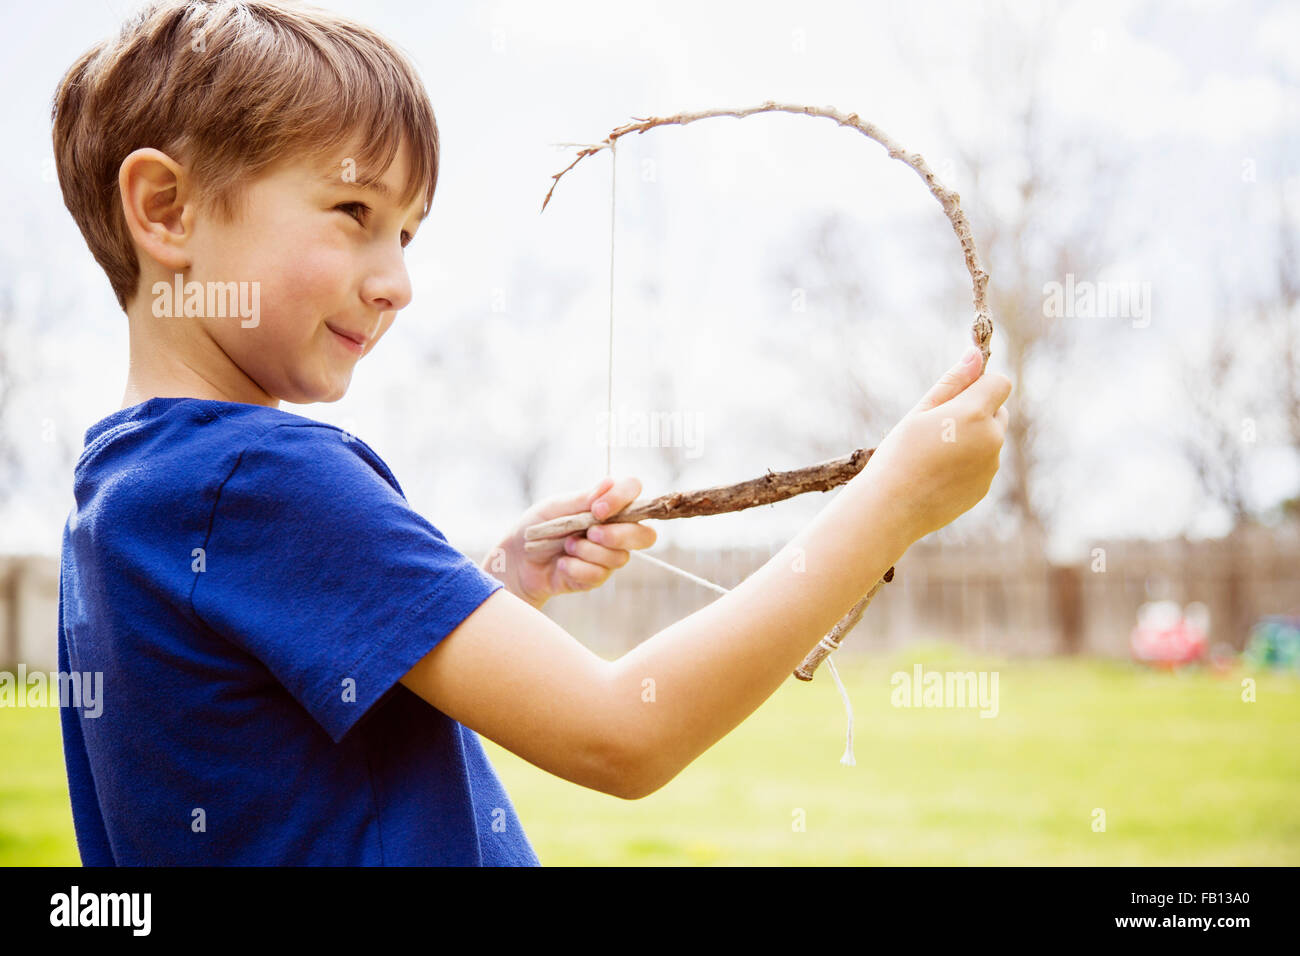 Portrait of boy (6-7) with toy bow - Stock Image